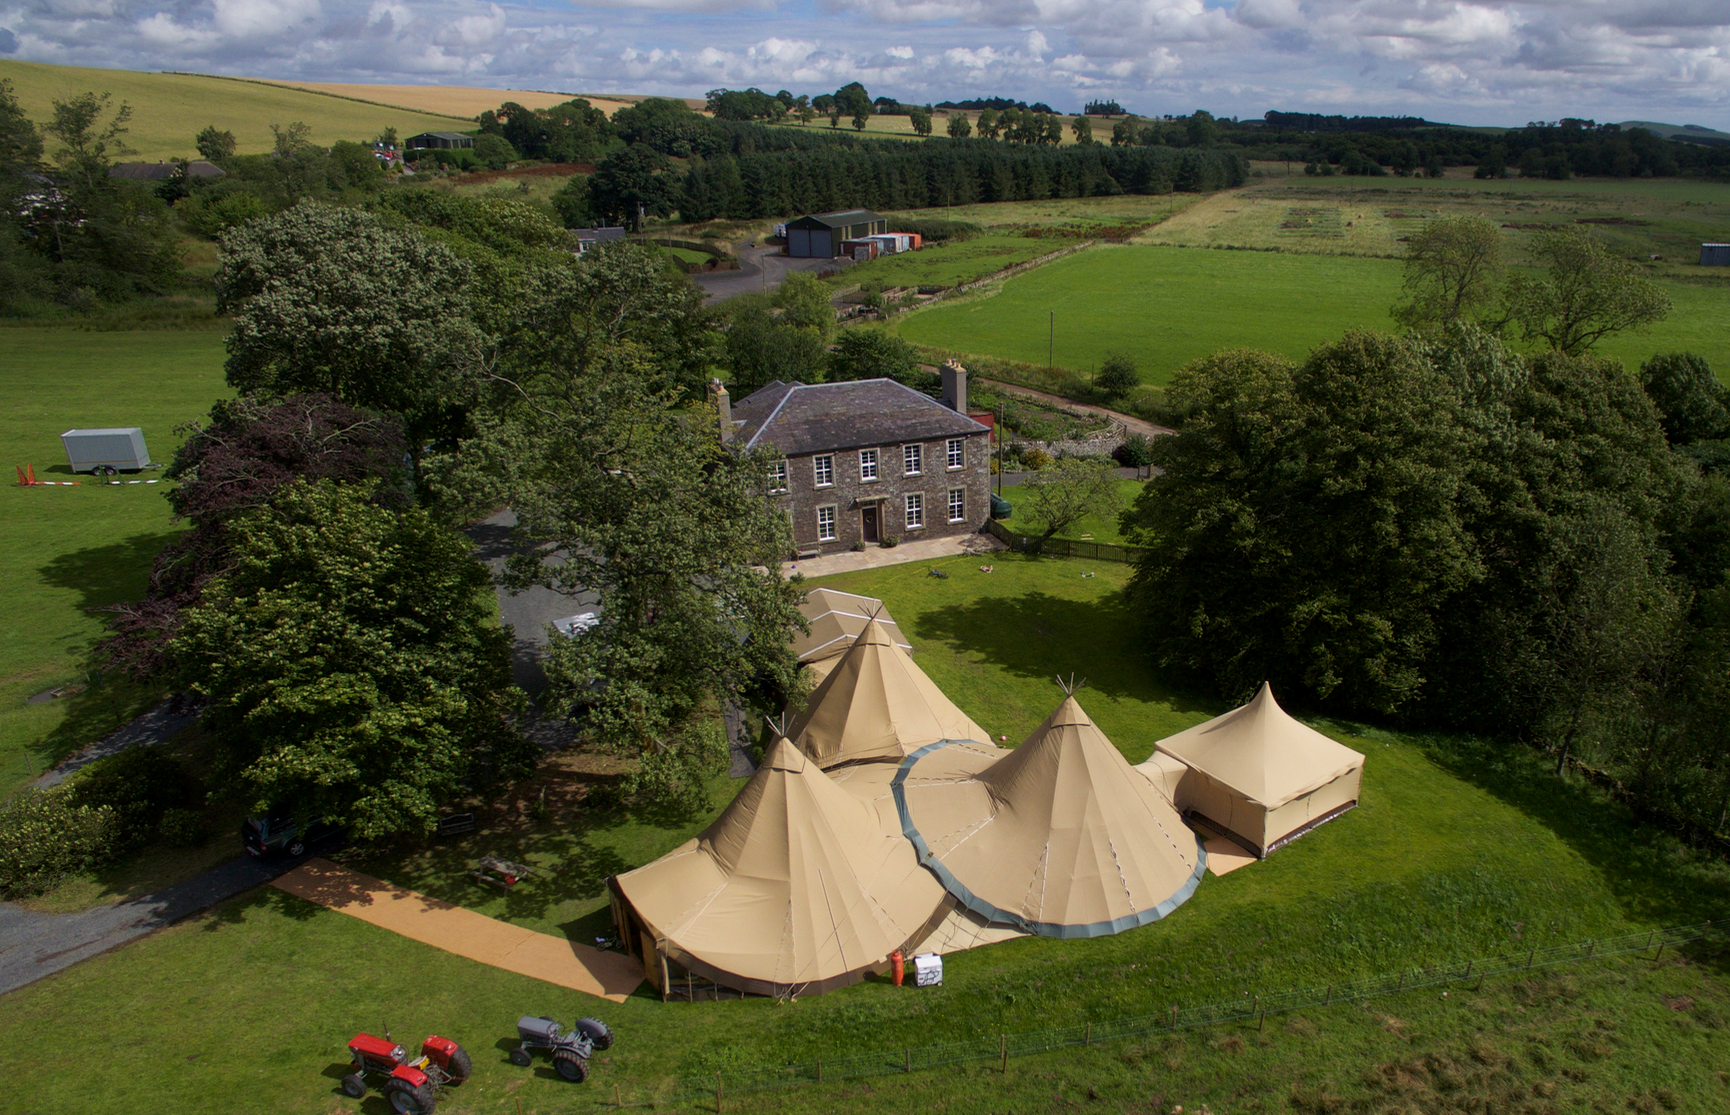 Catering Tipi Tents by Special Event Tipis - Cumbria, Northumberland, Scotland